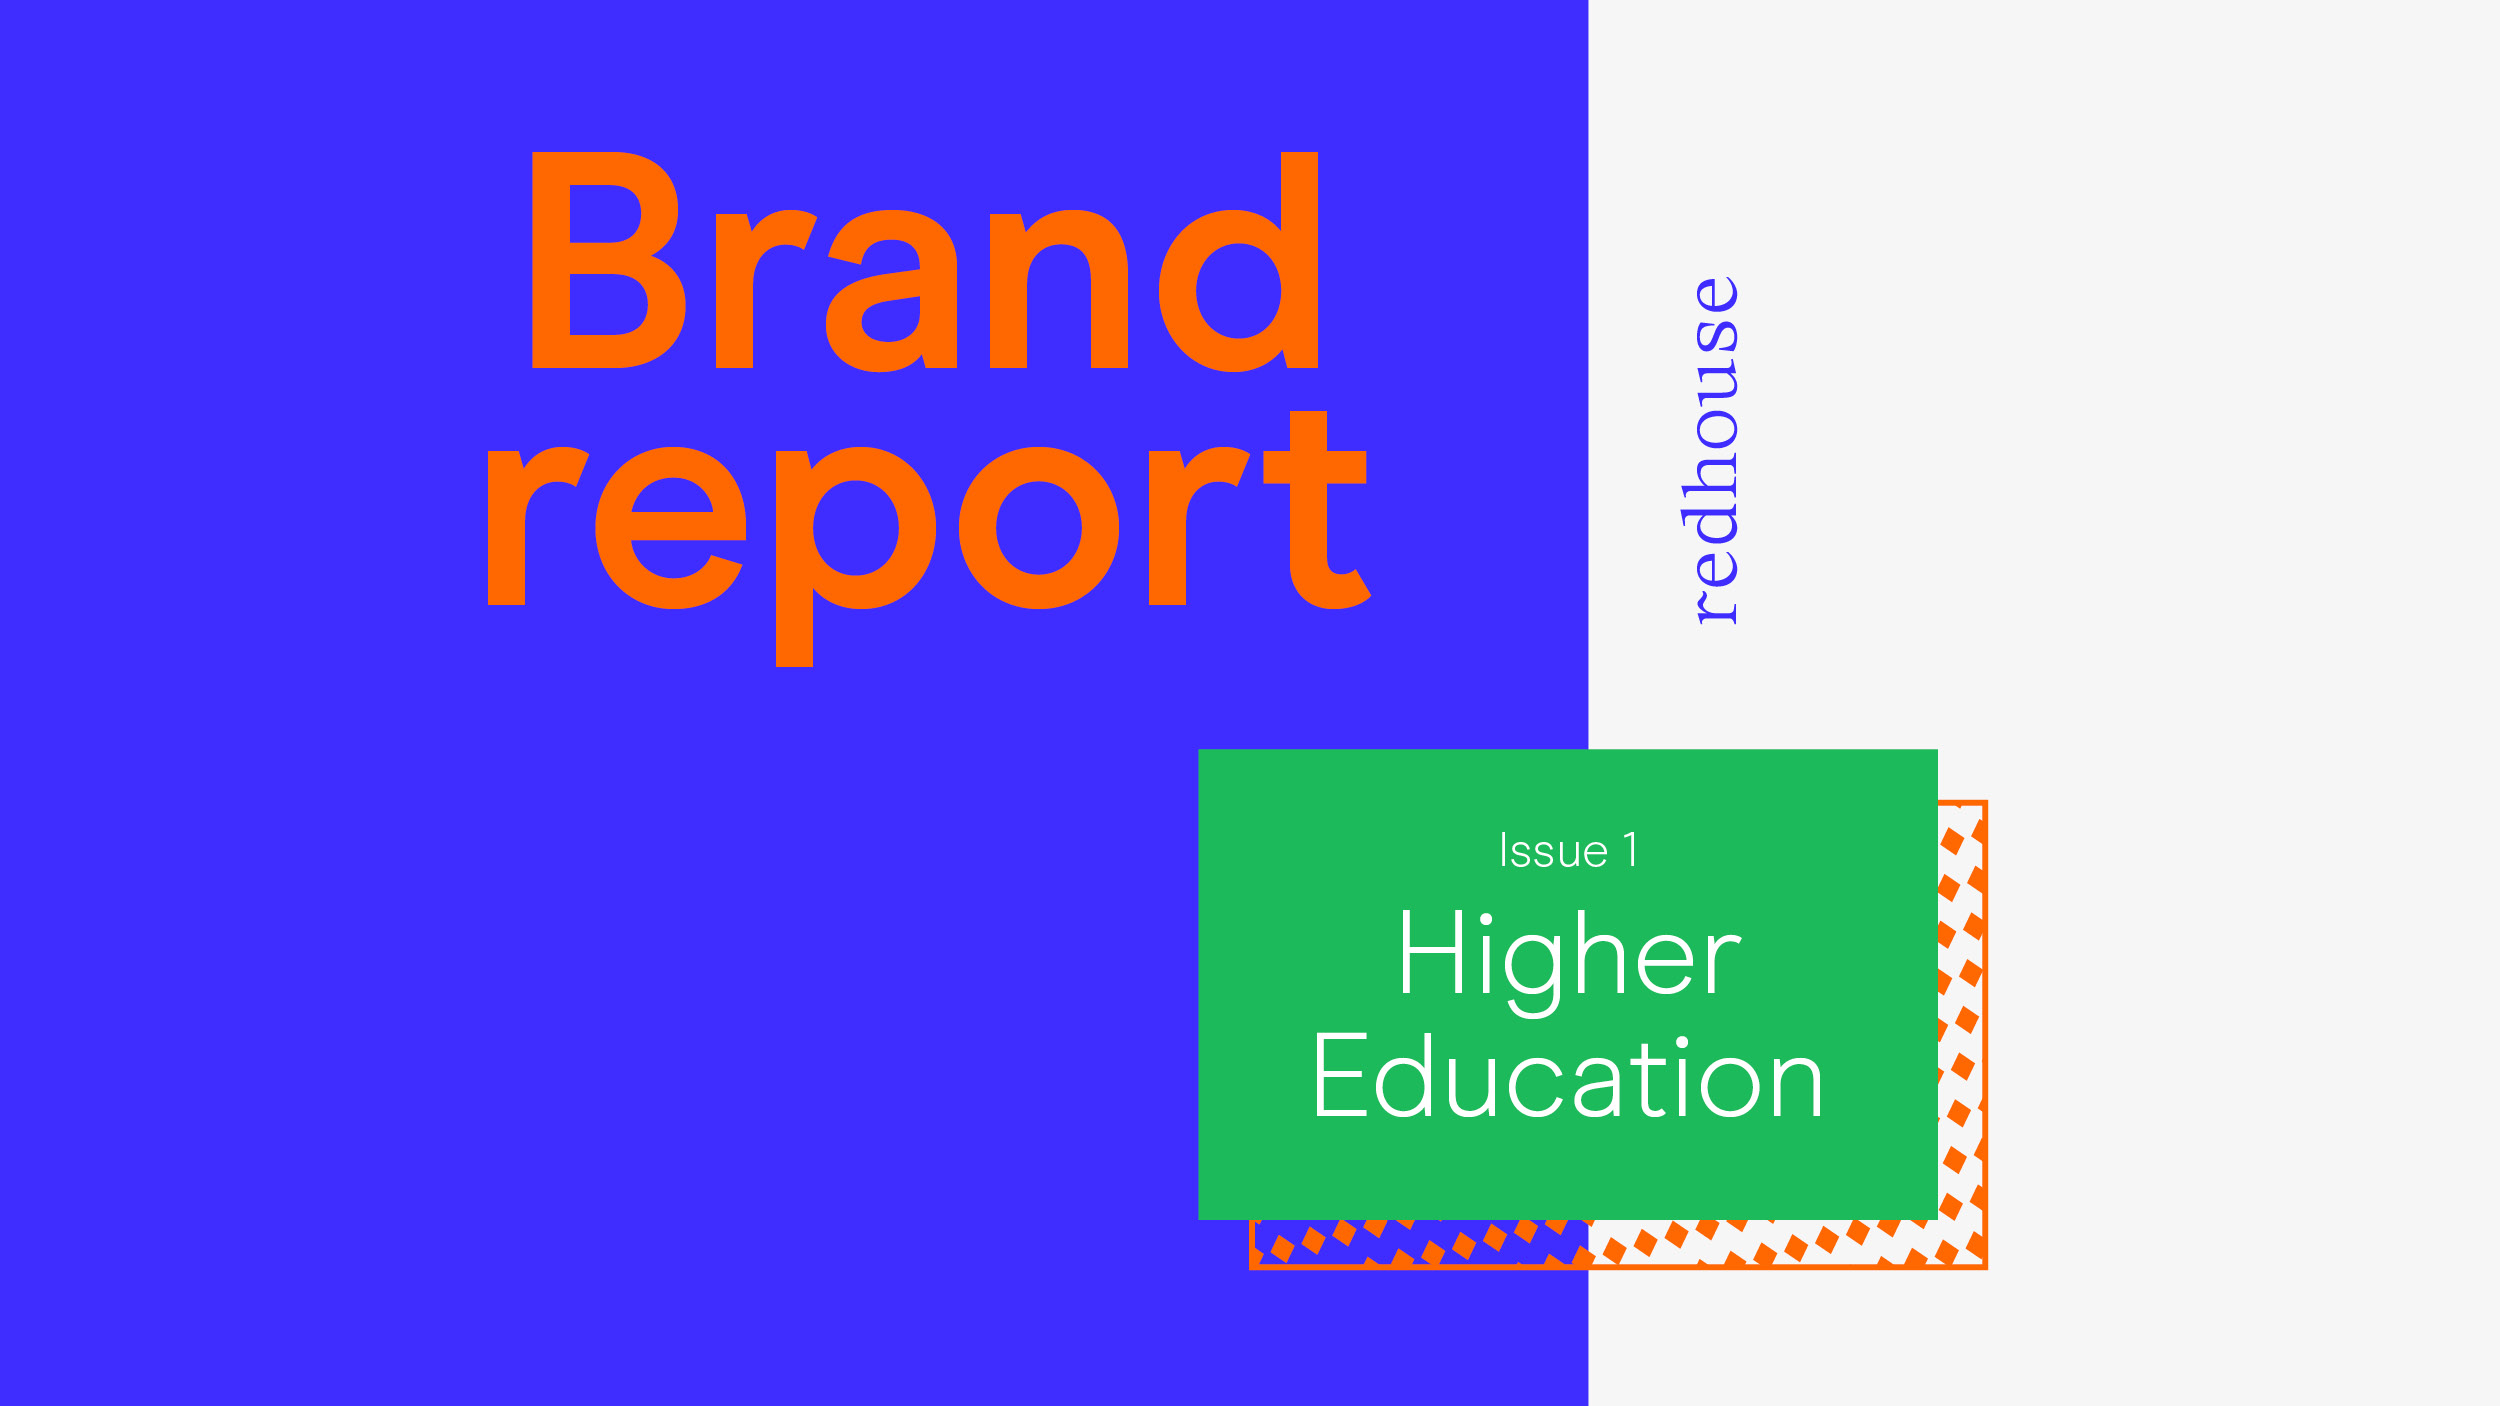 Brand belongs at the top table — redhouse